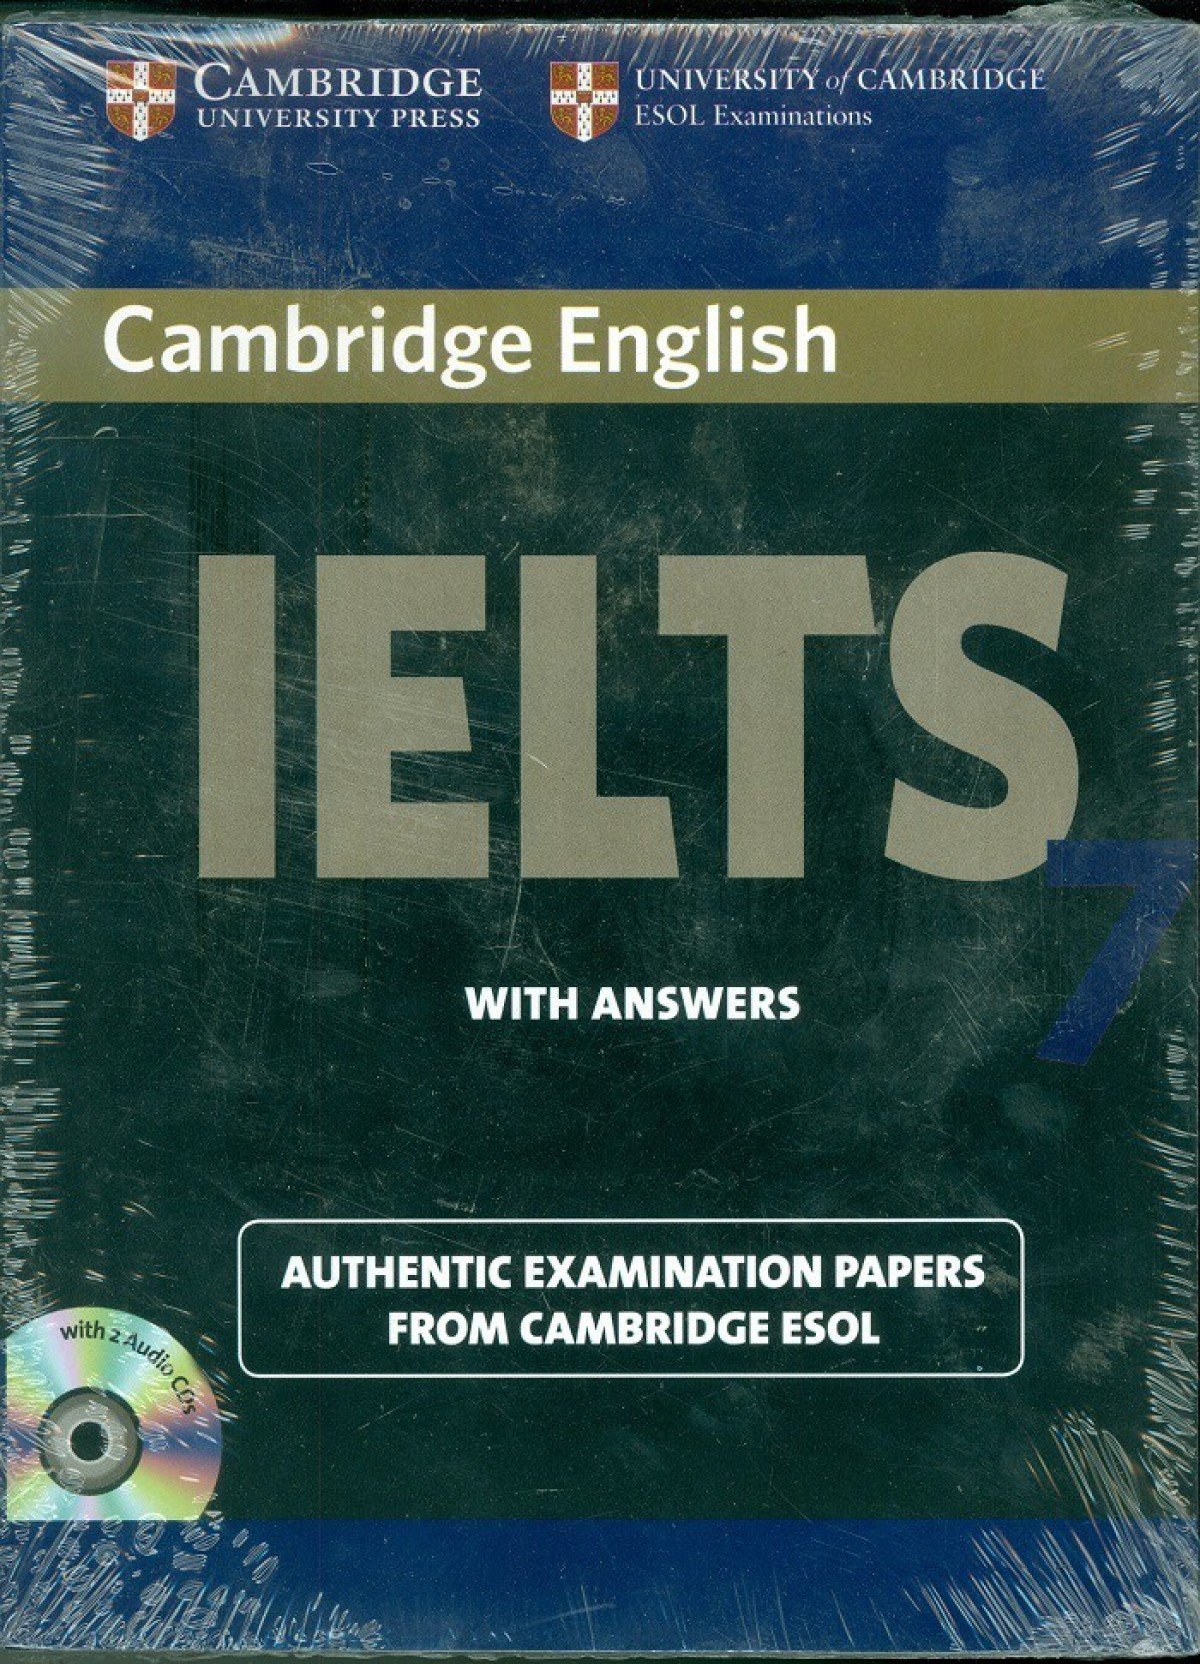 Cambridge IELTS 7 With 2 Audio CDs. ADD TO CART. BUY NOW. Home · Books ·  Educational and Professional Books · Entrance Exams Preparation Books